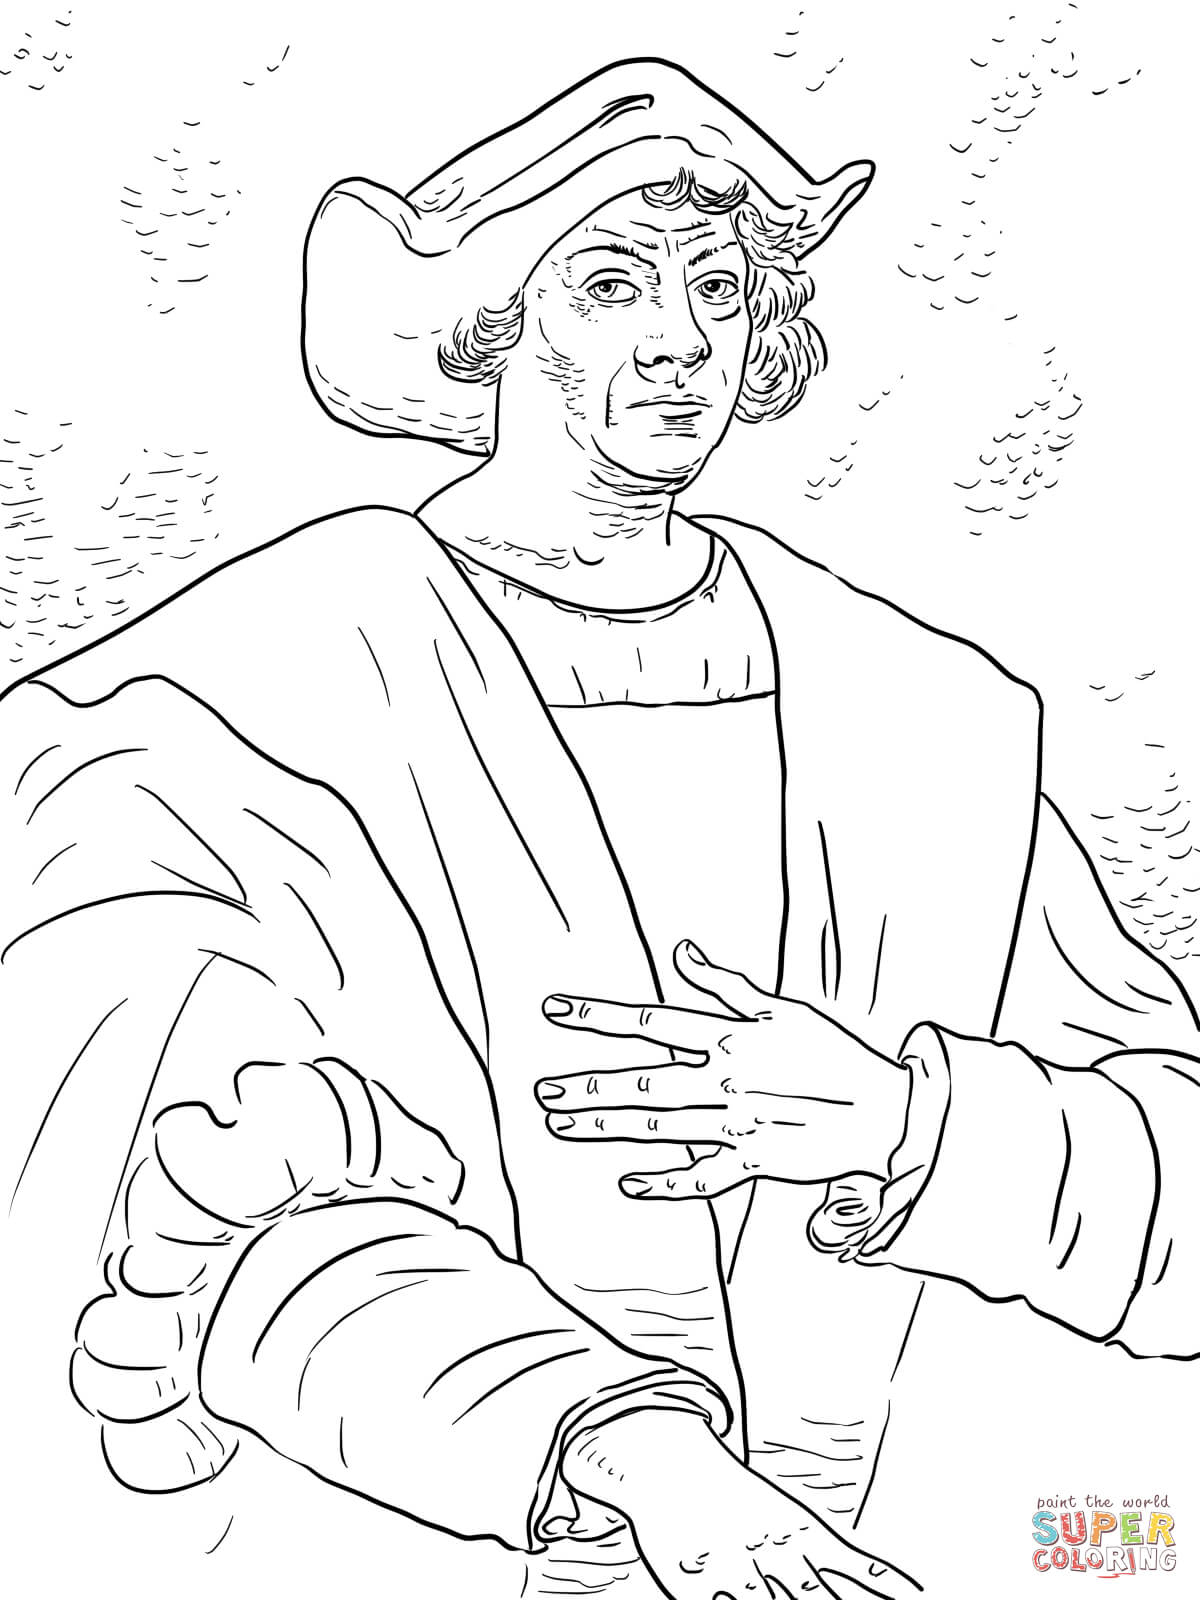 Christopher Columbus Coloring Page | Free Printable Coloring Pages - Free Printable Christopher Columbus Coloring Pages